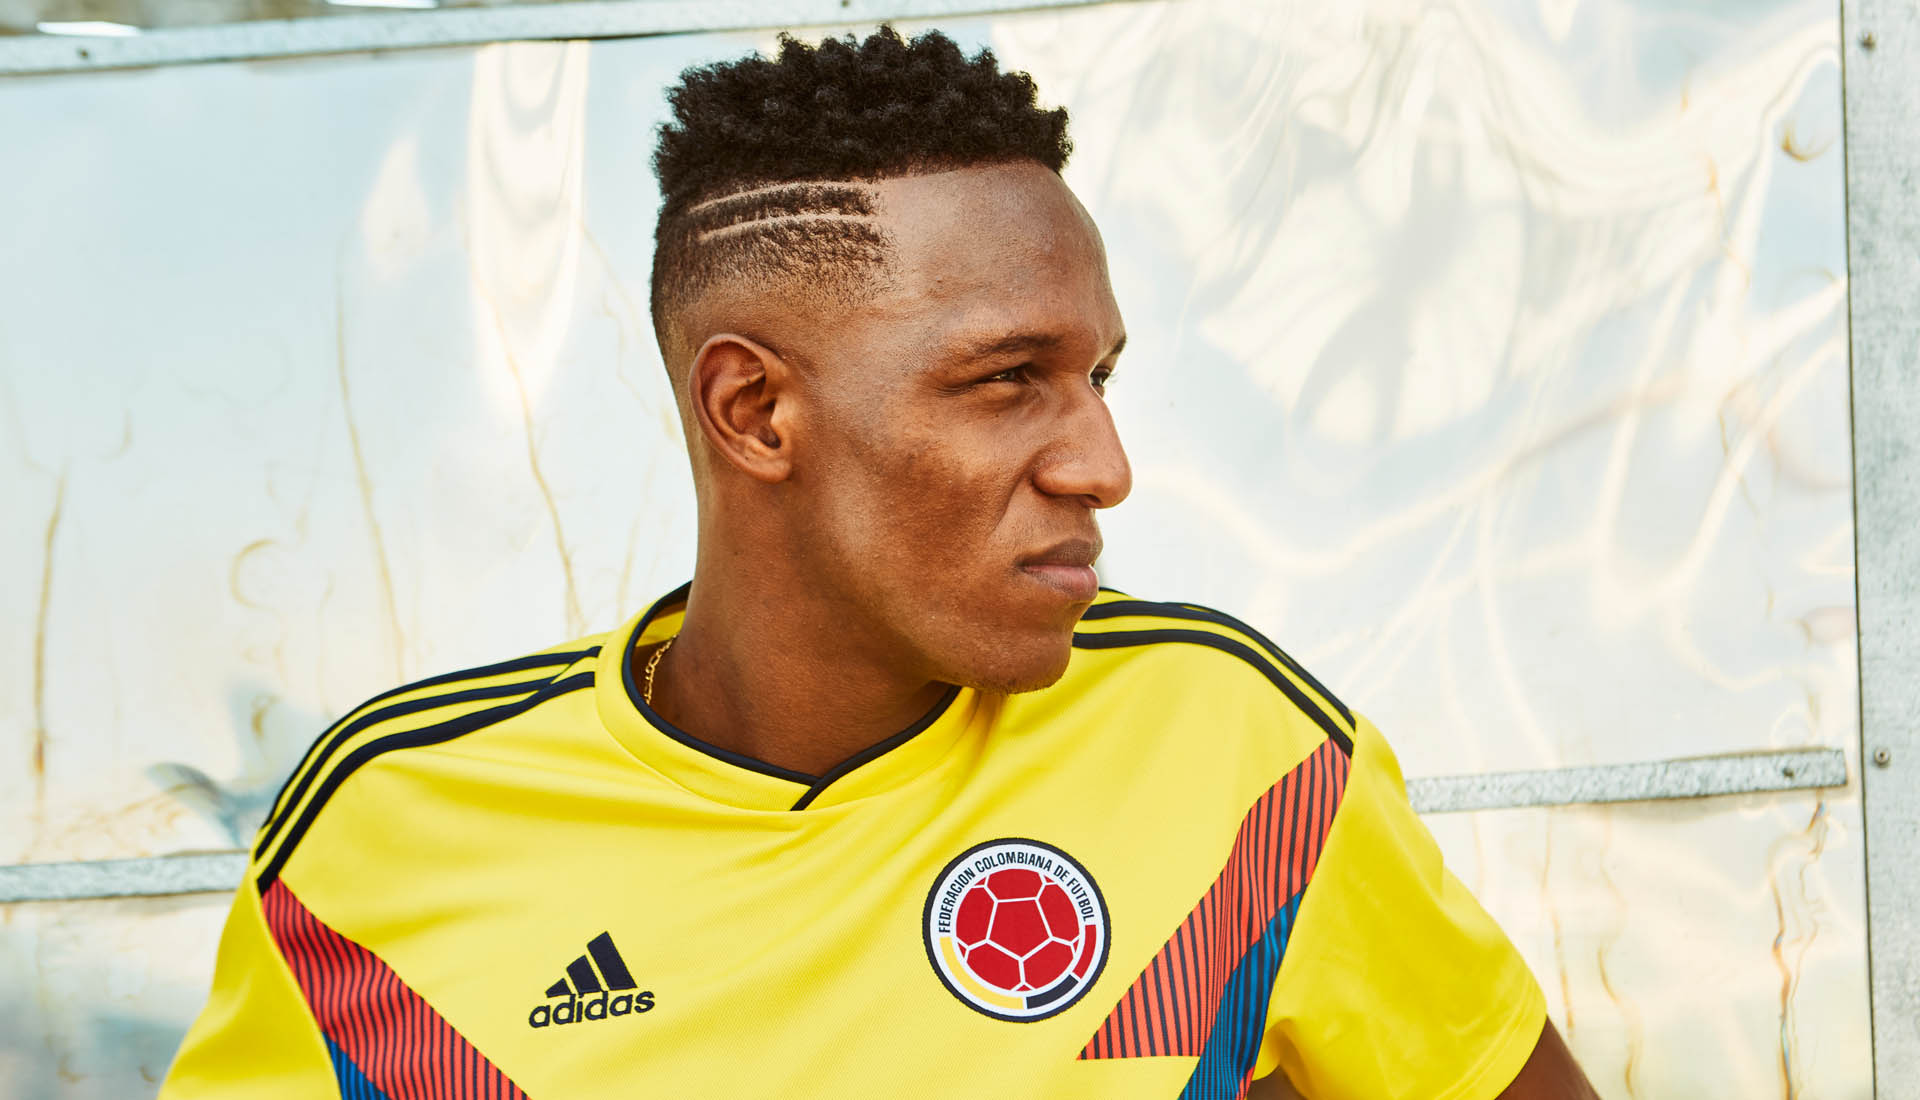 Colombia World Cup Shirt 2018 adidas SoccerBible_0000_MINA_12883.jpg